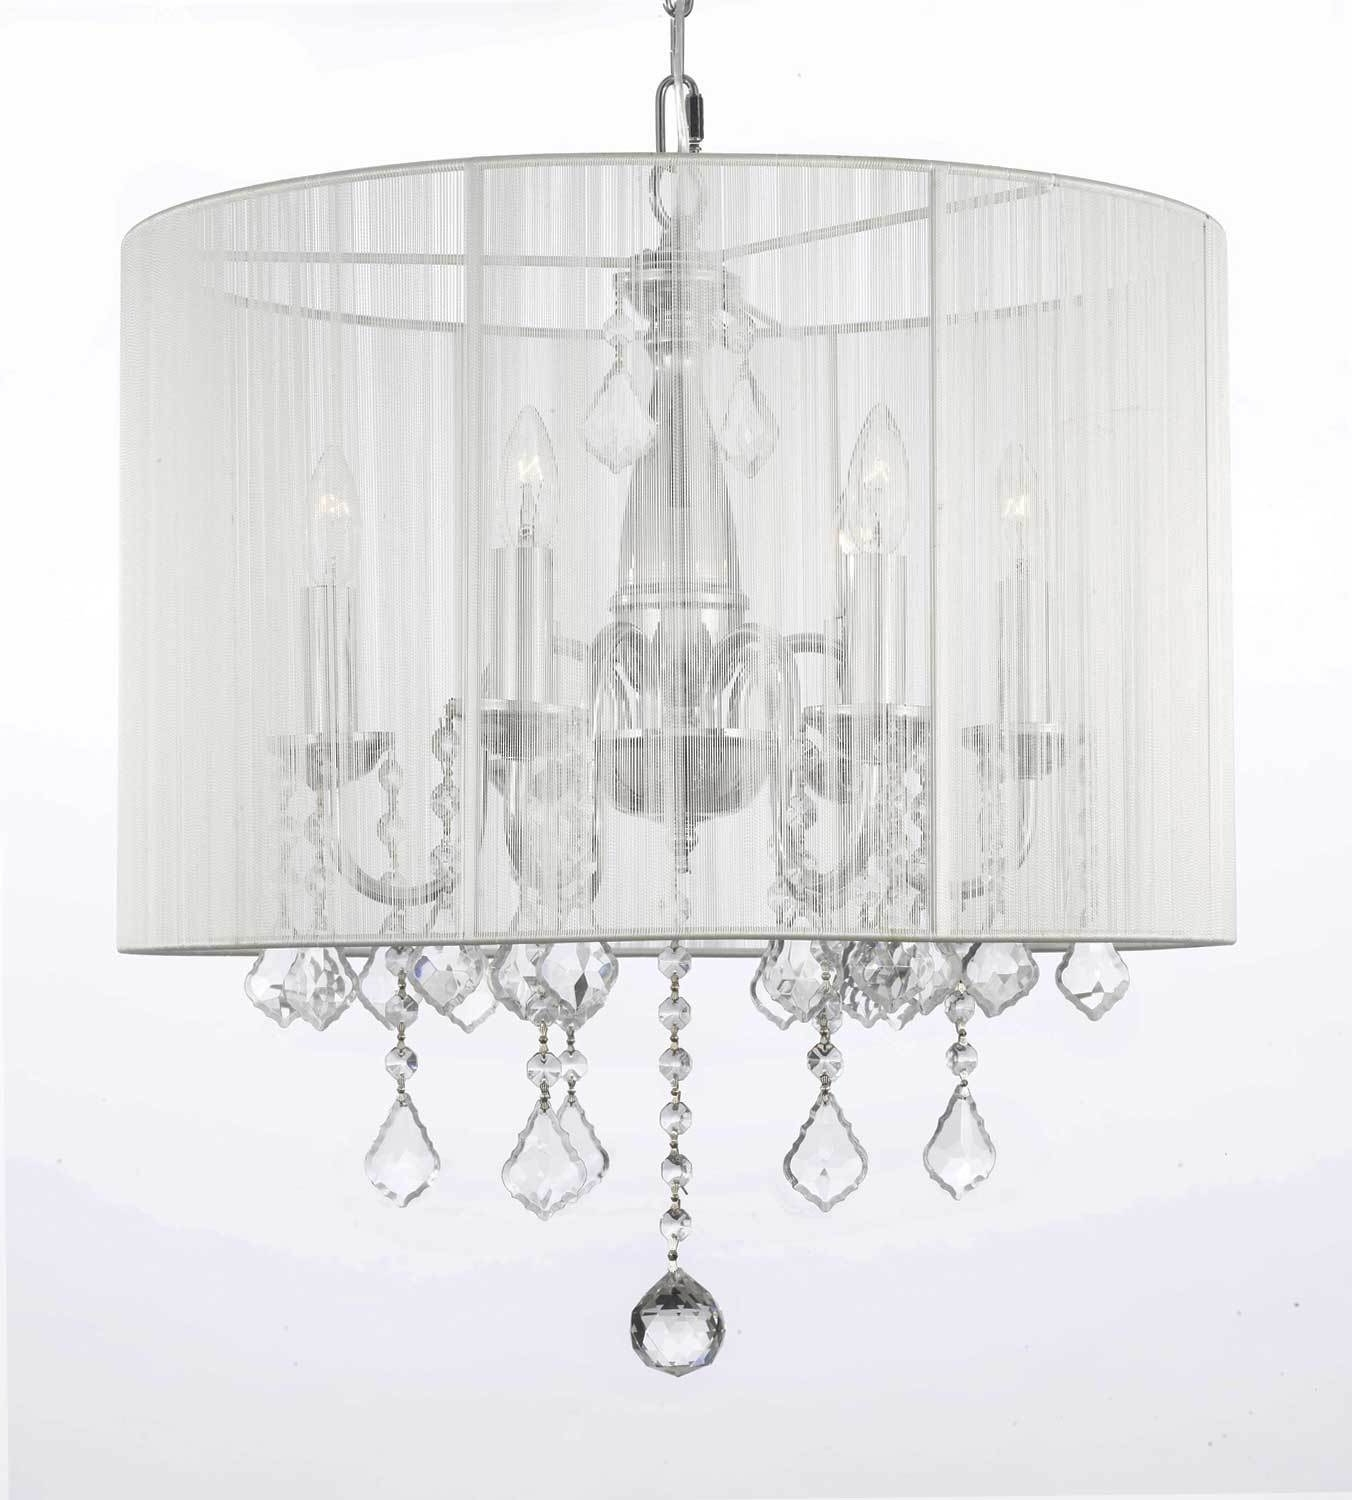 Latest Attractive White Chandelier With Shades G7 11266 Gallery Chandeliers Pertaining To Crystal Chandeliers With Shades (View 11 of 15)